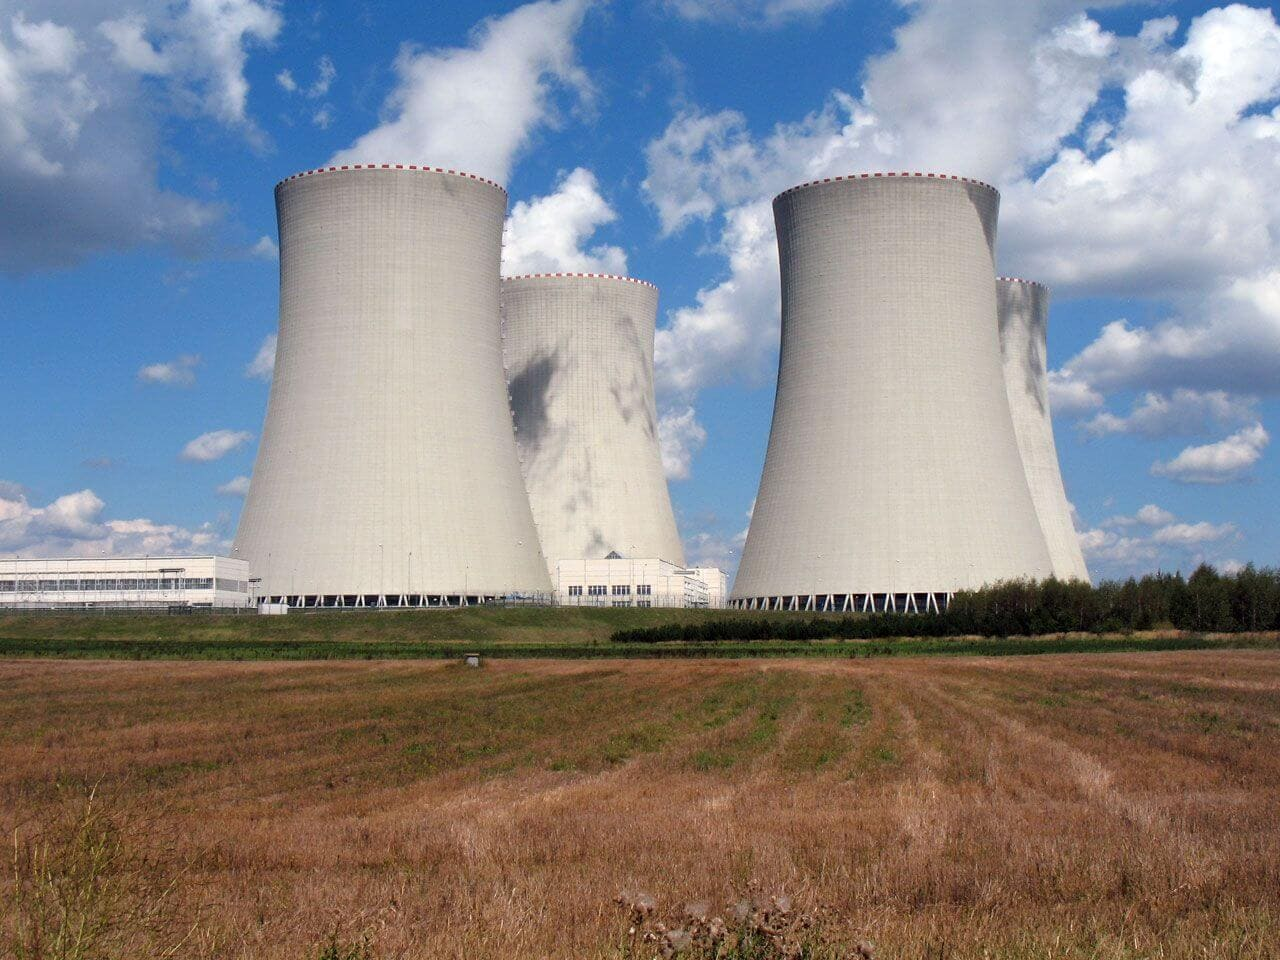 The Challenge of Nuclear Power